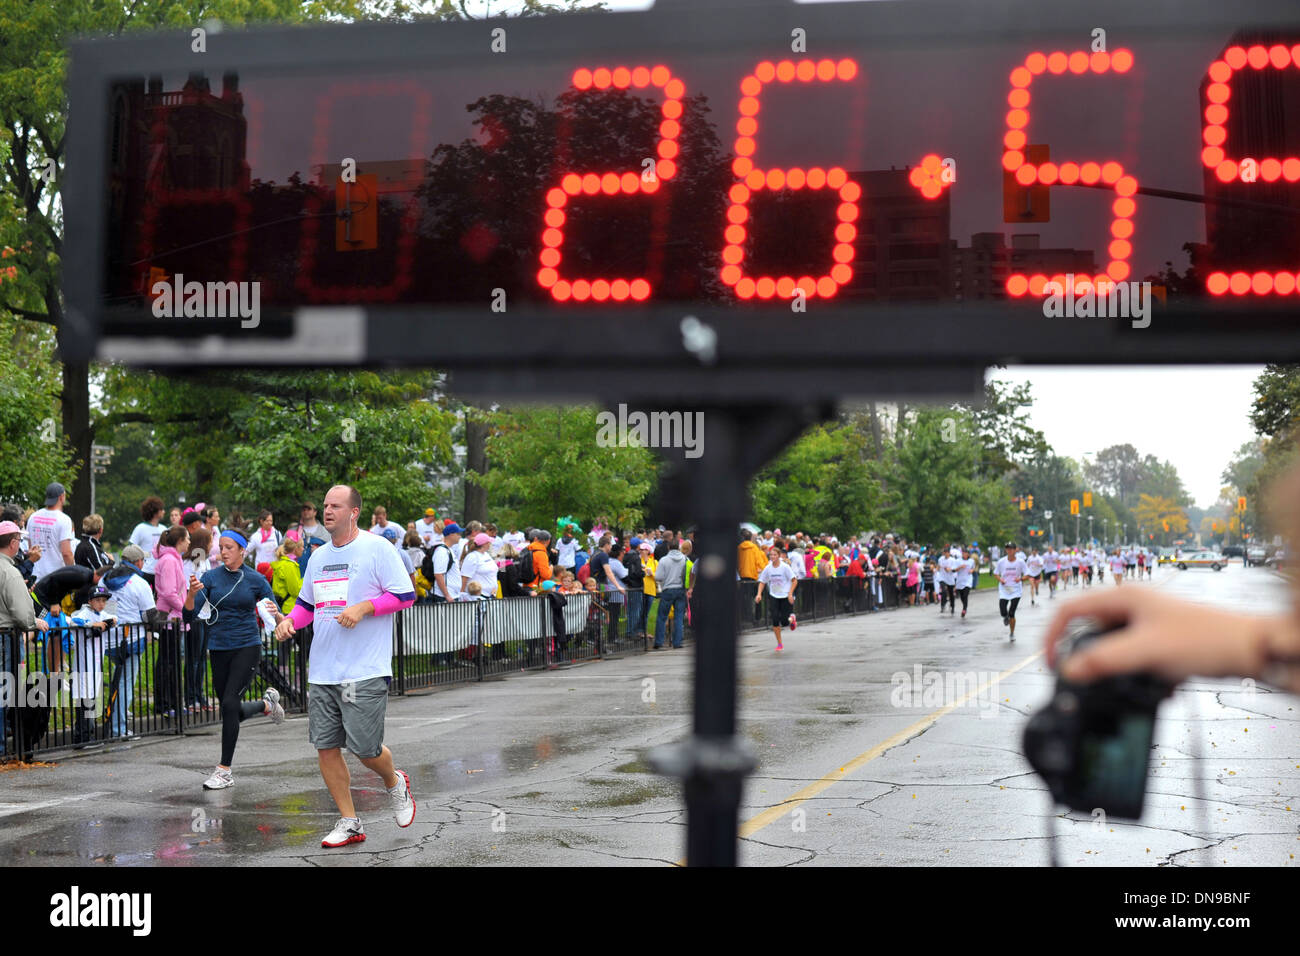 The finish line and timing screen at the end of a charity run. - Stock Image